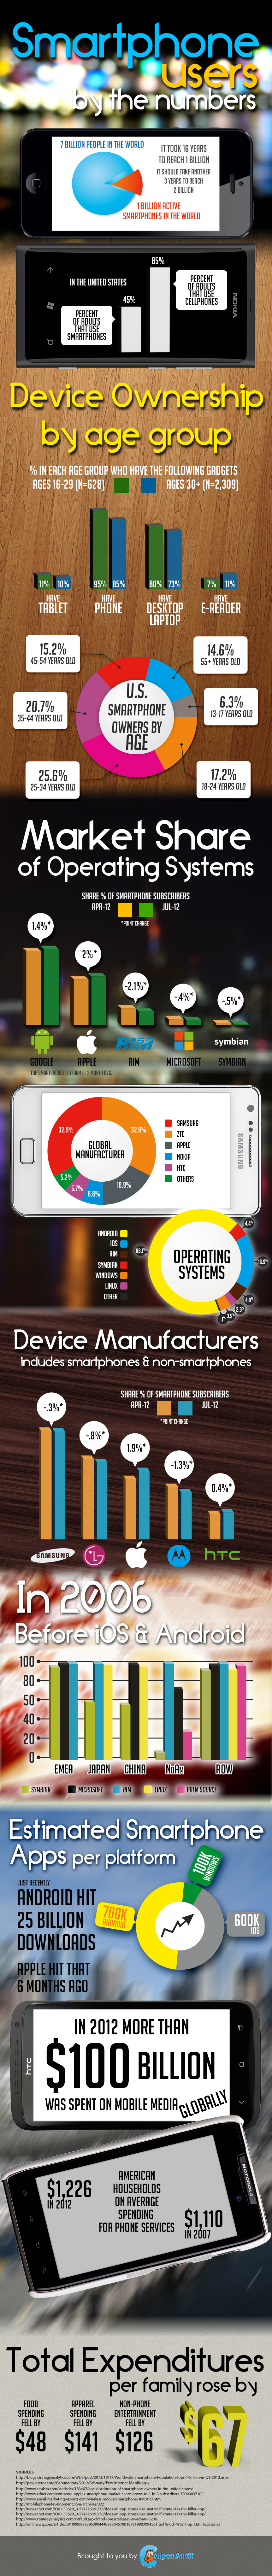 smart-phone-users-by-the-numbers-infographic_50dd31f0a1bb3